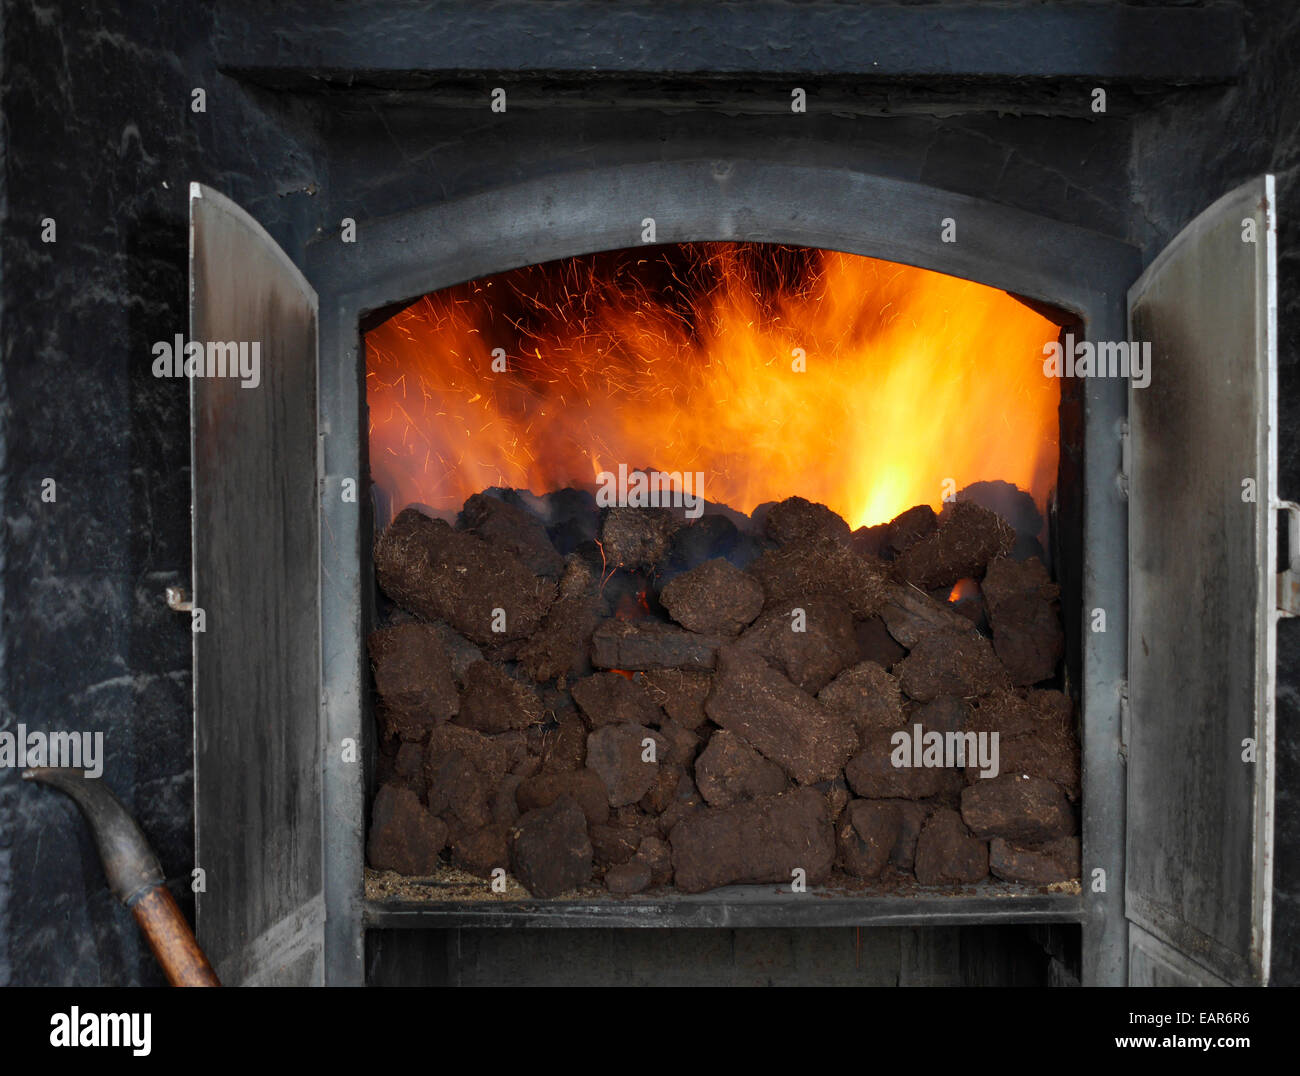 The peat oven kiln at Laphroaig distillery that gives Laphroaig its peaty, smoky flavour Islay Scotland - Stock Image